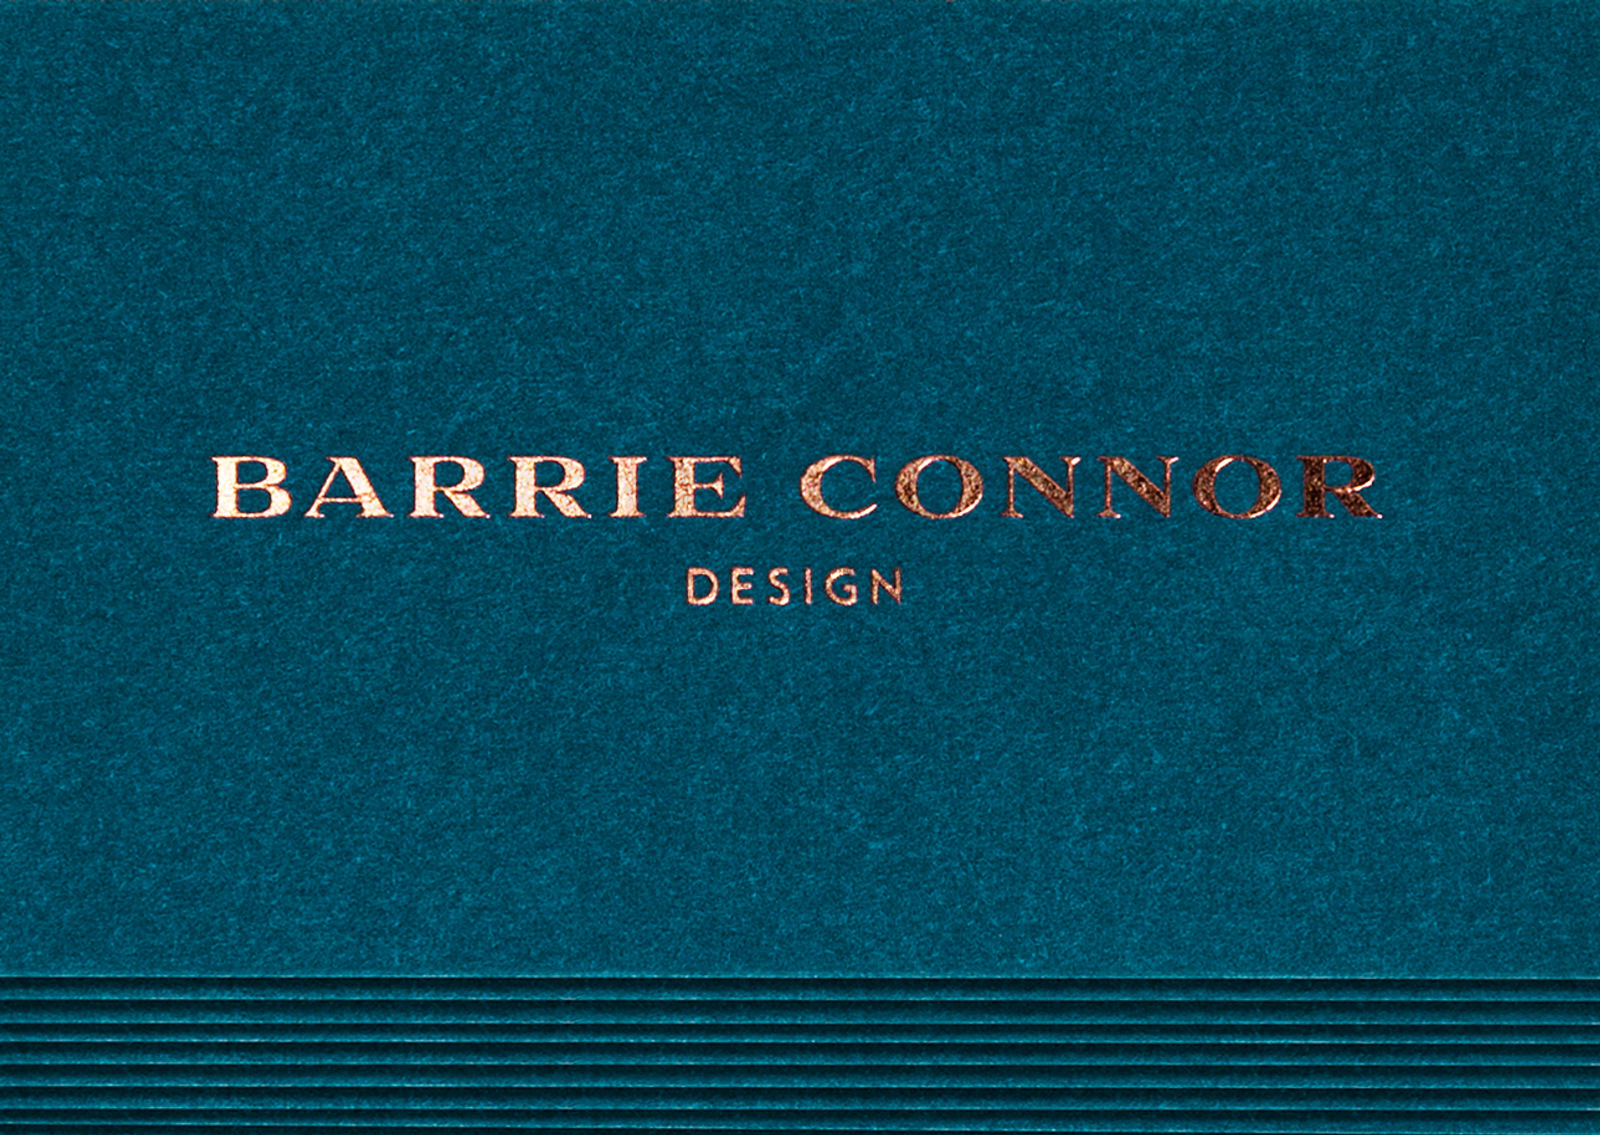 A rich delft blue with copper foil typography is one of 3 bespoke colours of Barrie Connor business cards